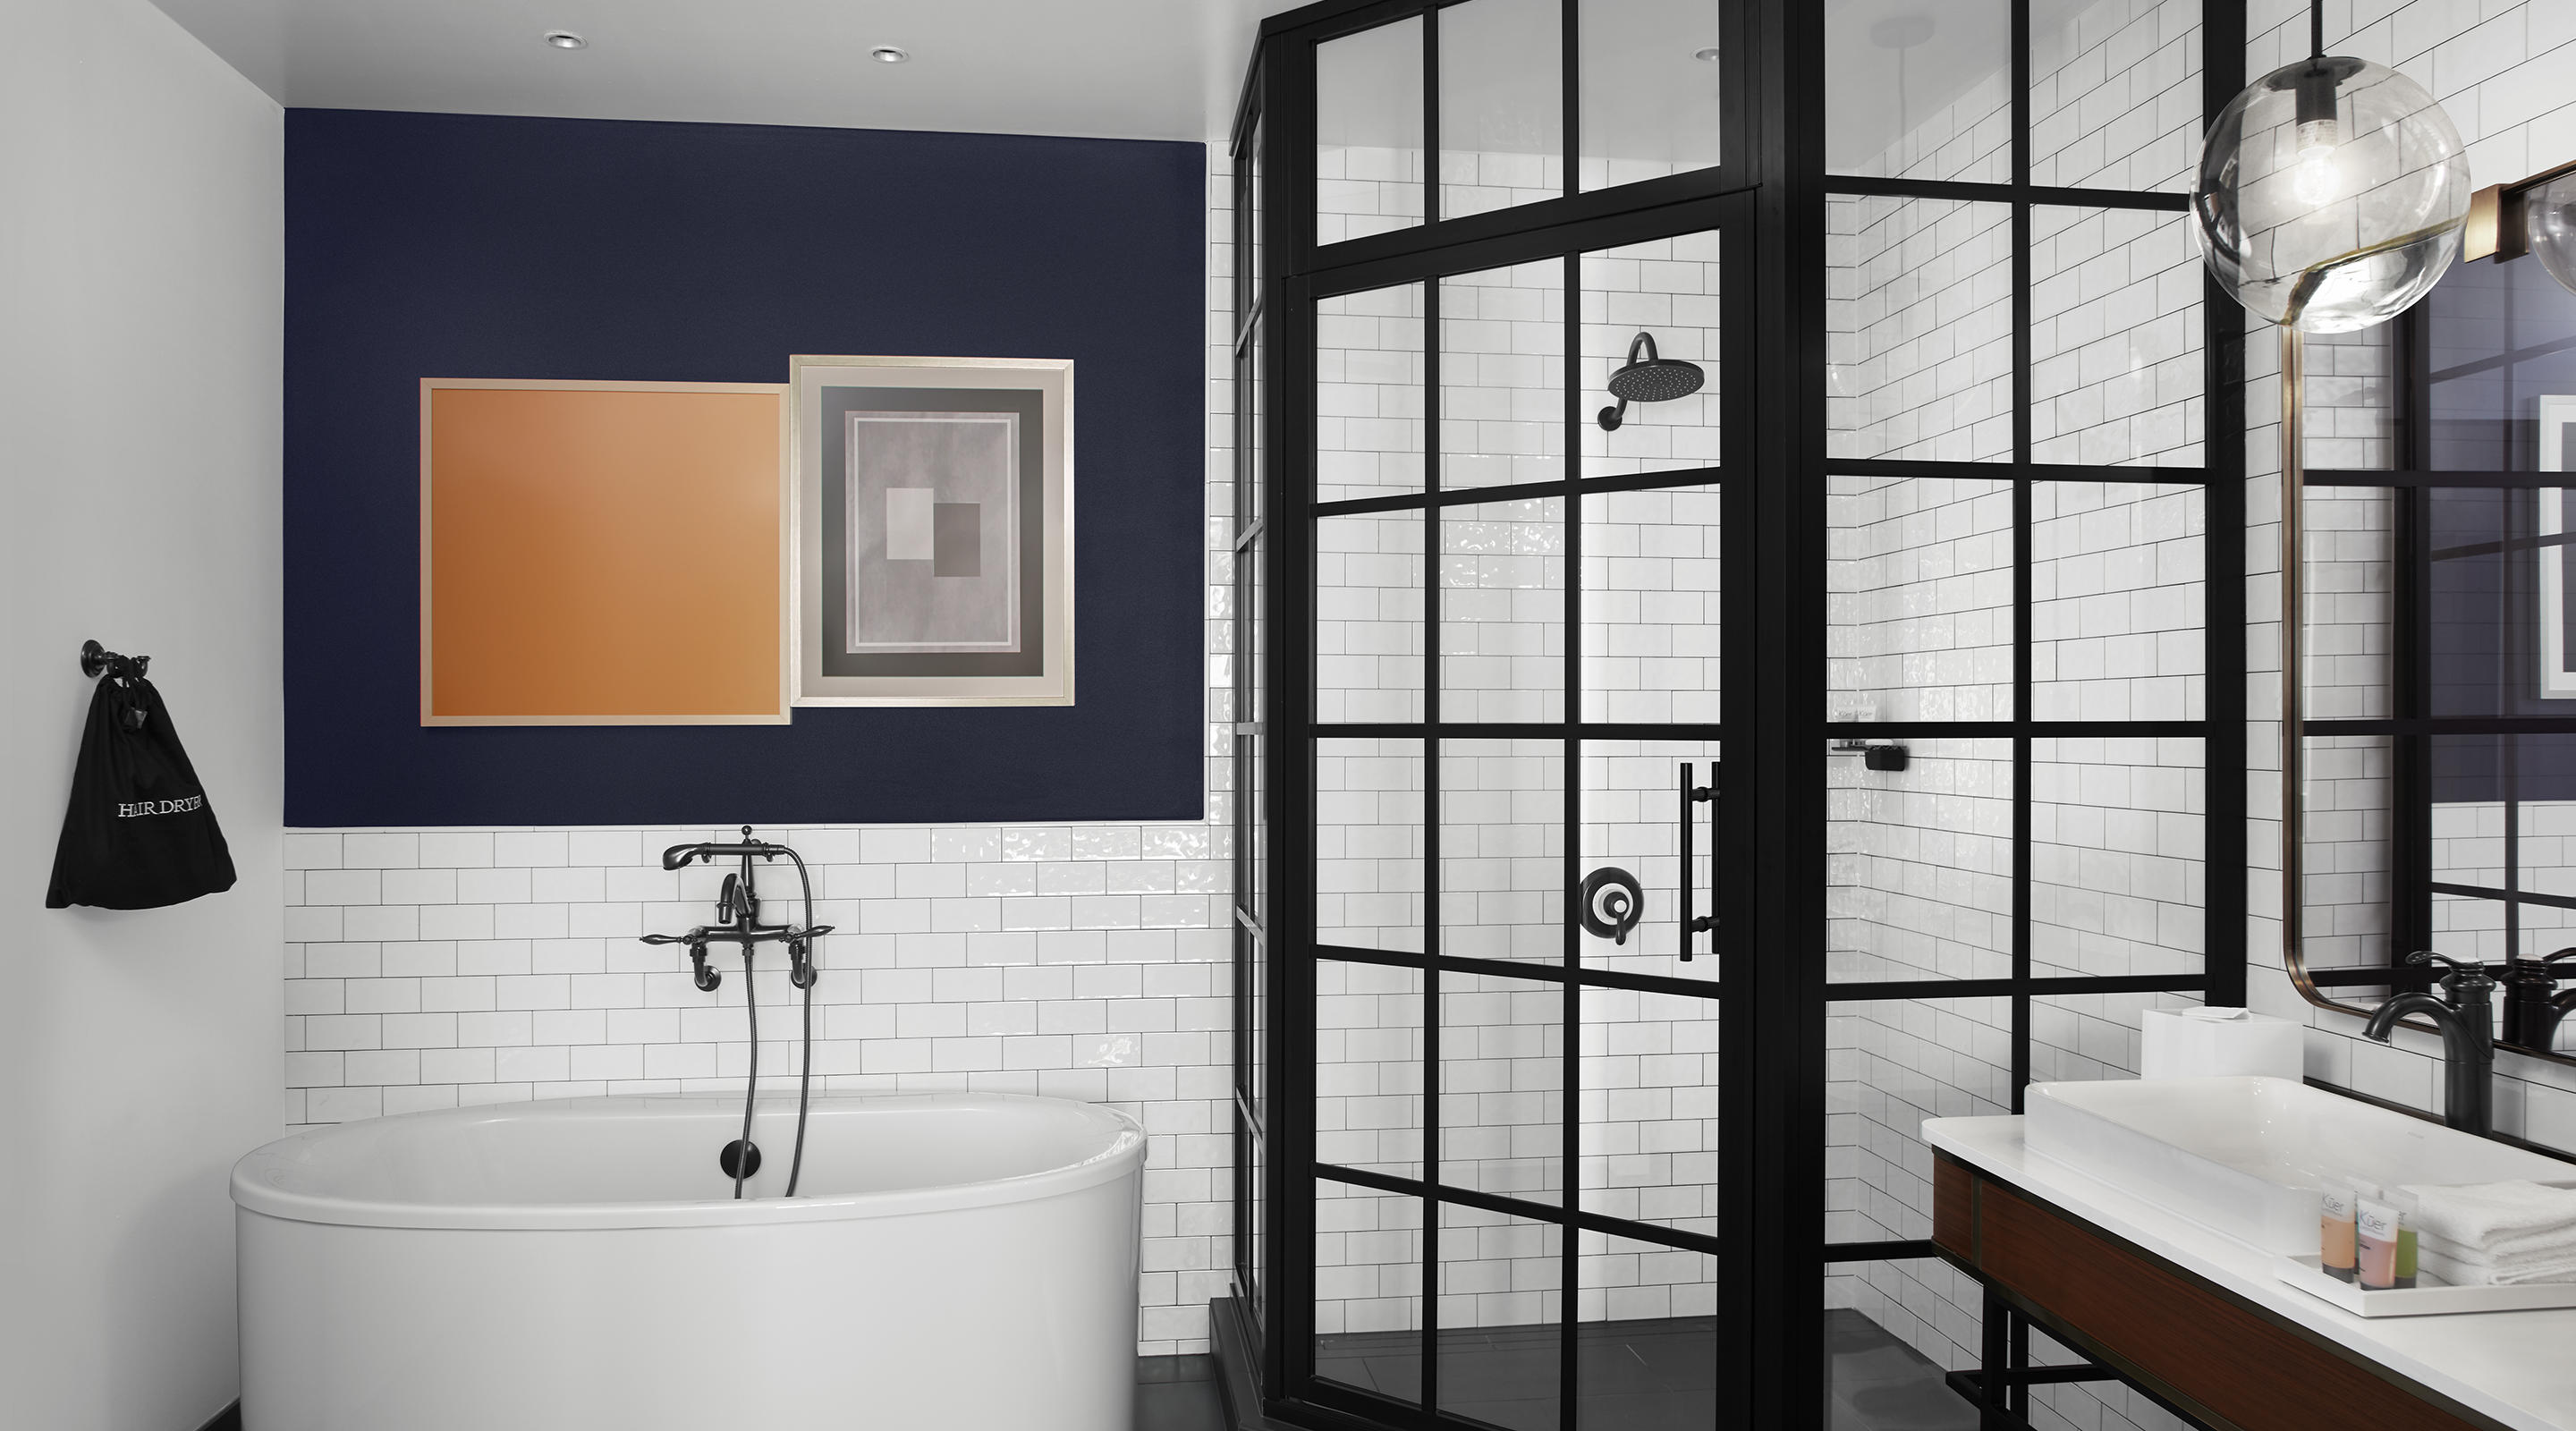 Subway tile is featured all through these modern day bathrooms.